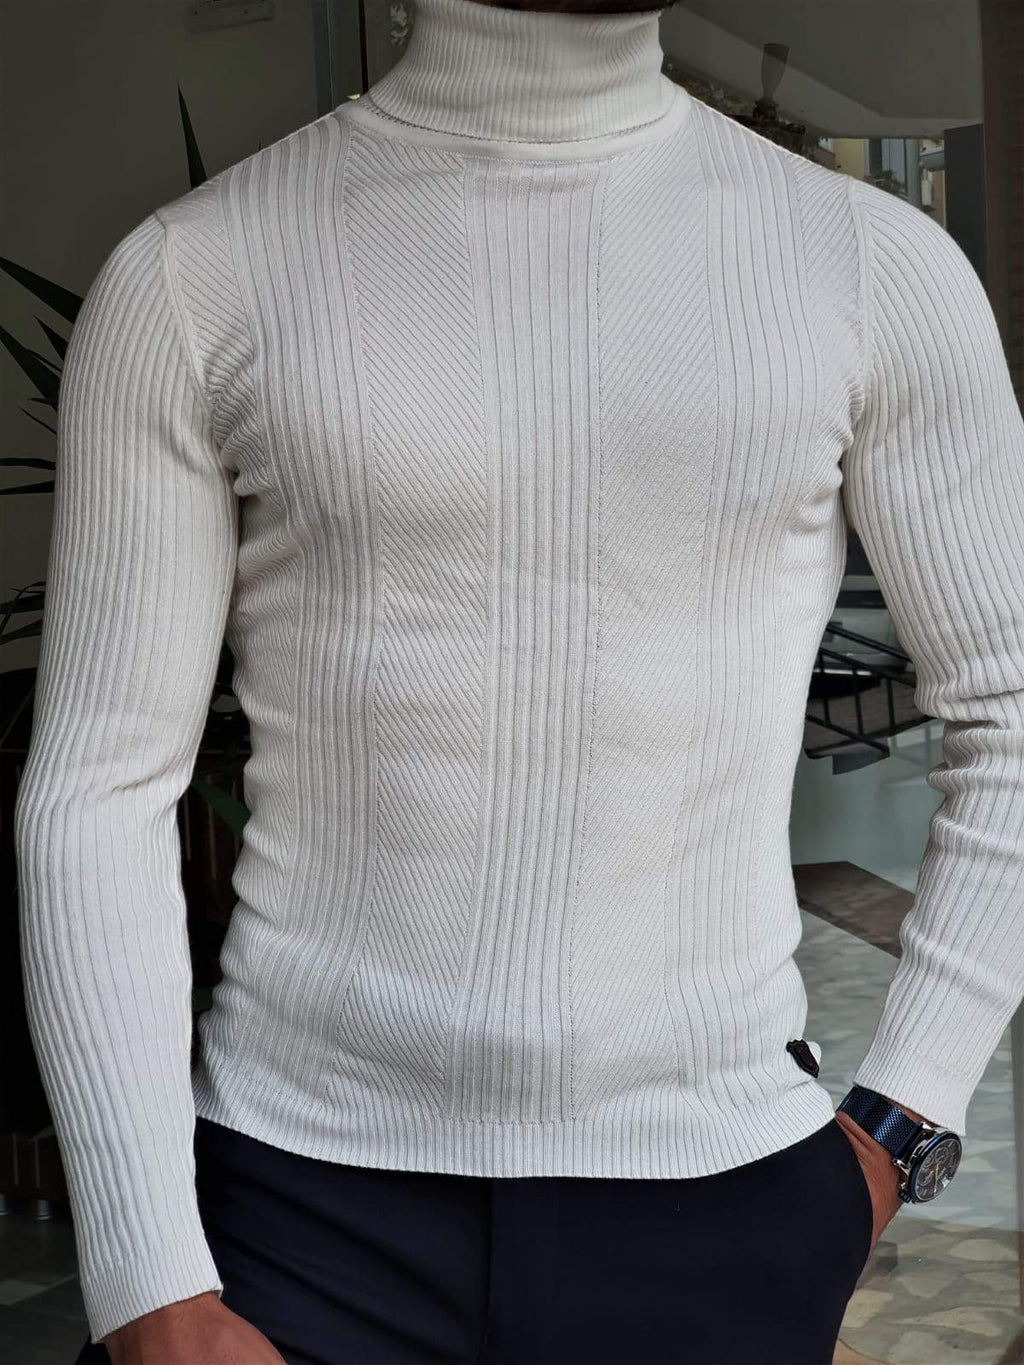 Elko White Slim Fit Striped Turtleneck Wool Sweater